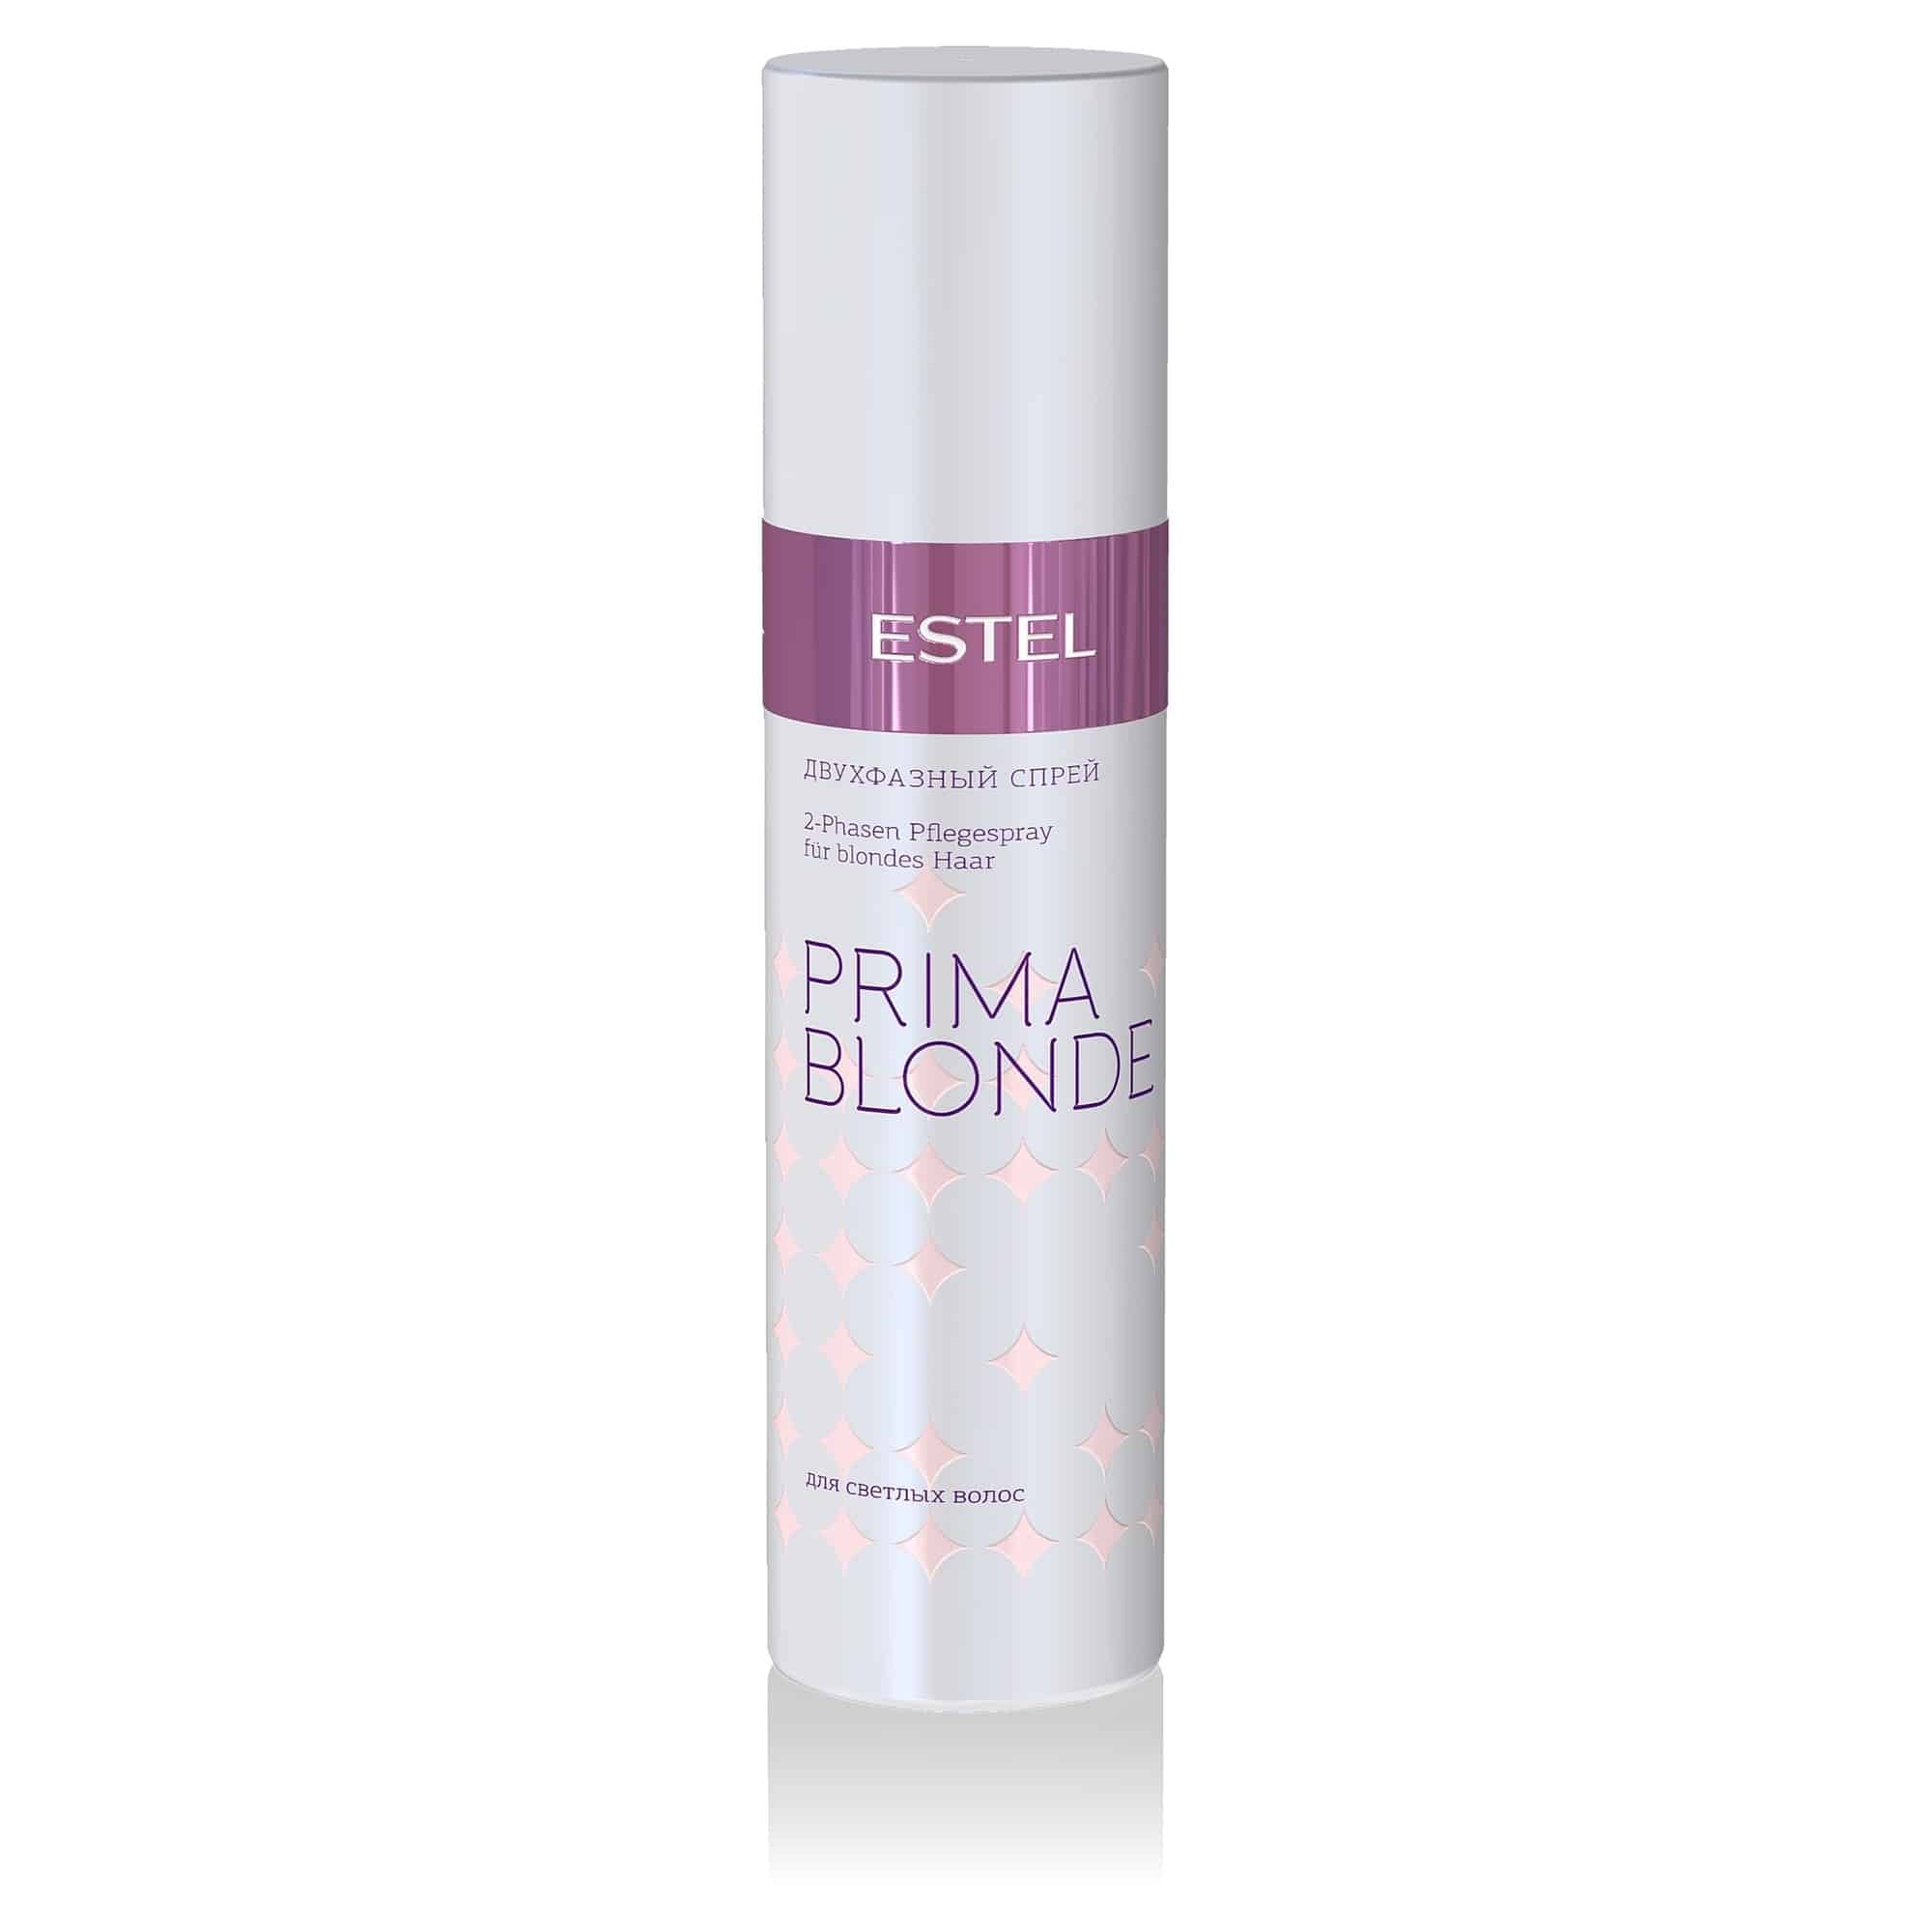 PRIMA BLONDE 2-Phasen Pflegespray von ESTEL